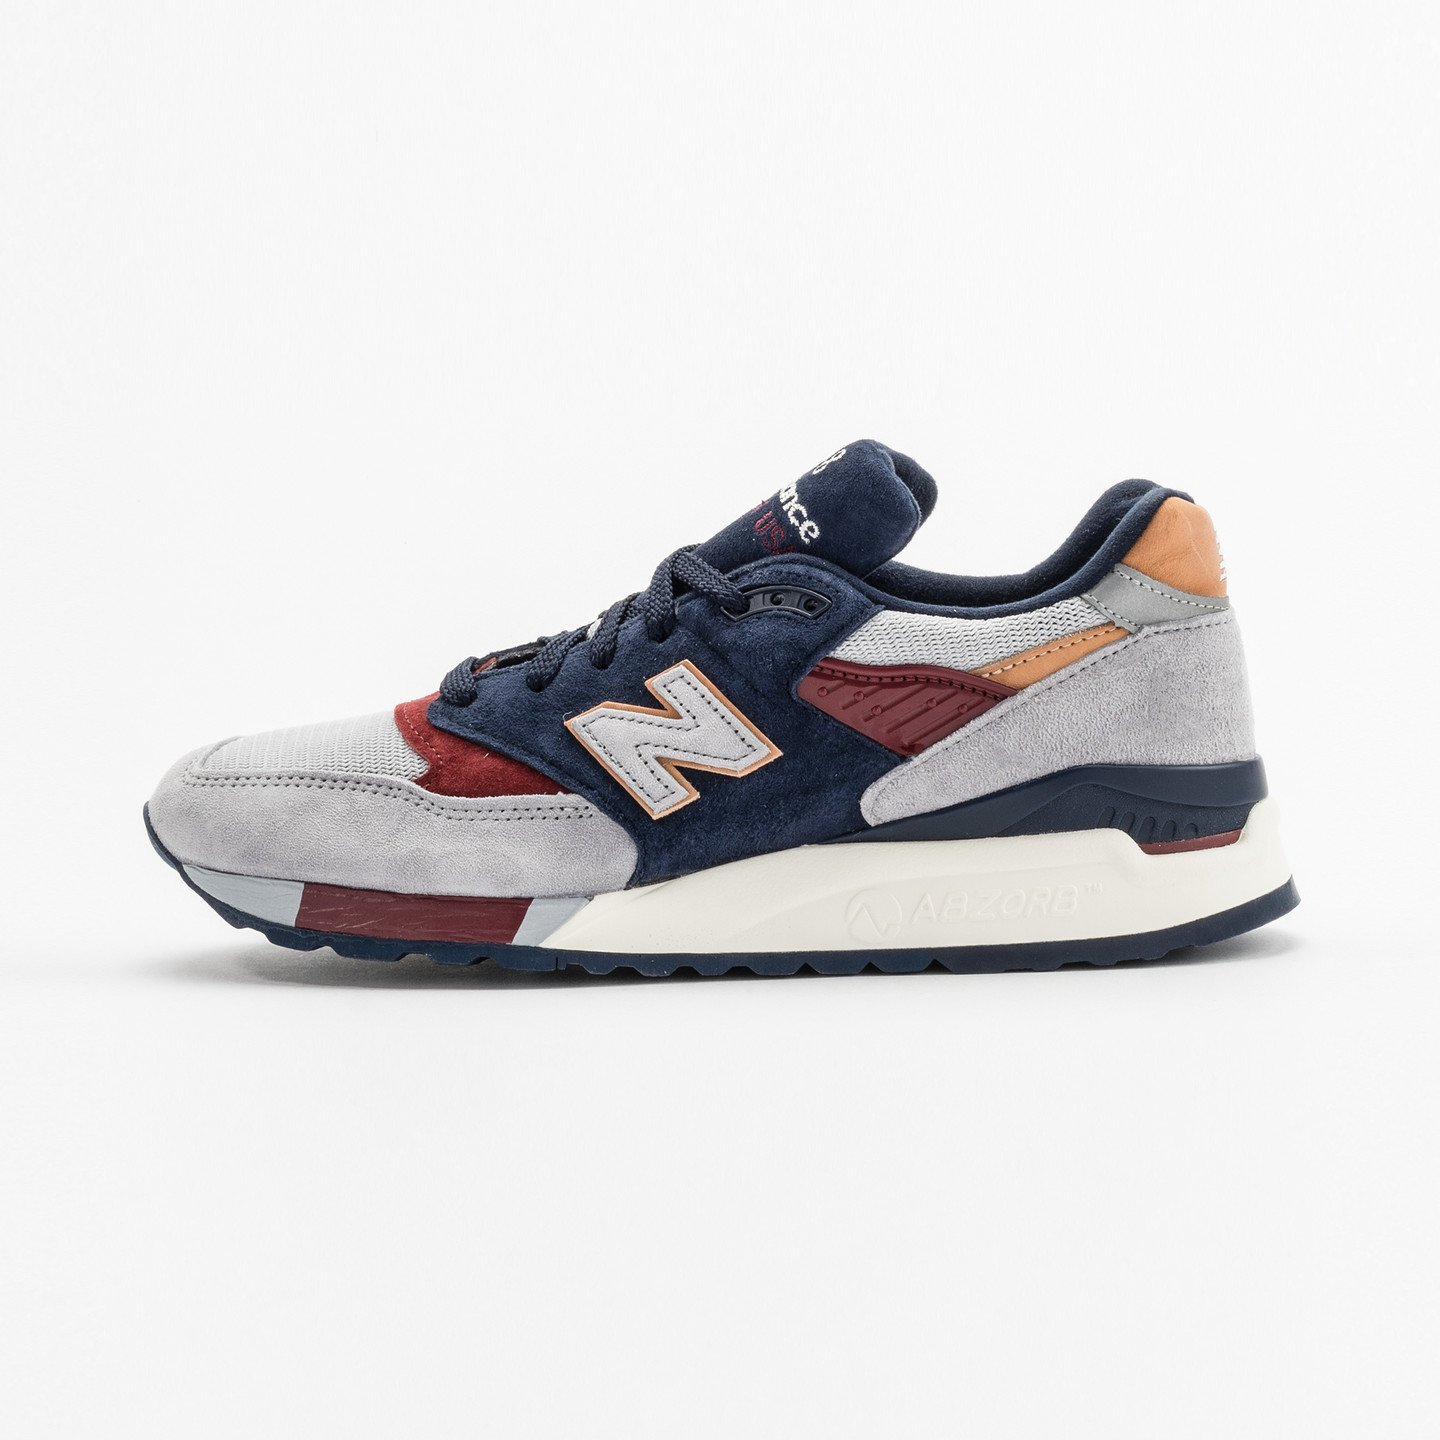 New Balance M998 - Made in USA Light Grey / Navy / Red M998CSU